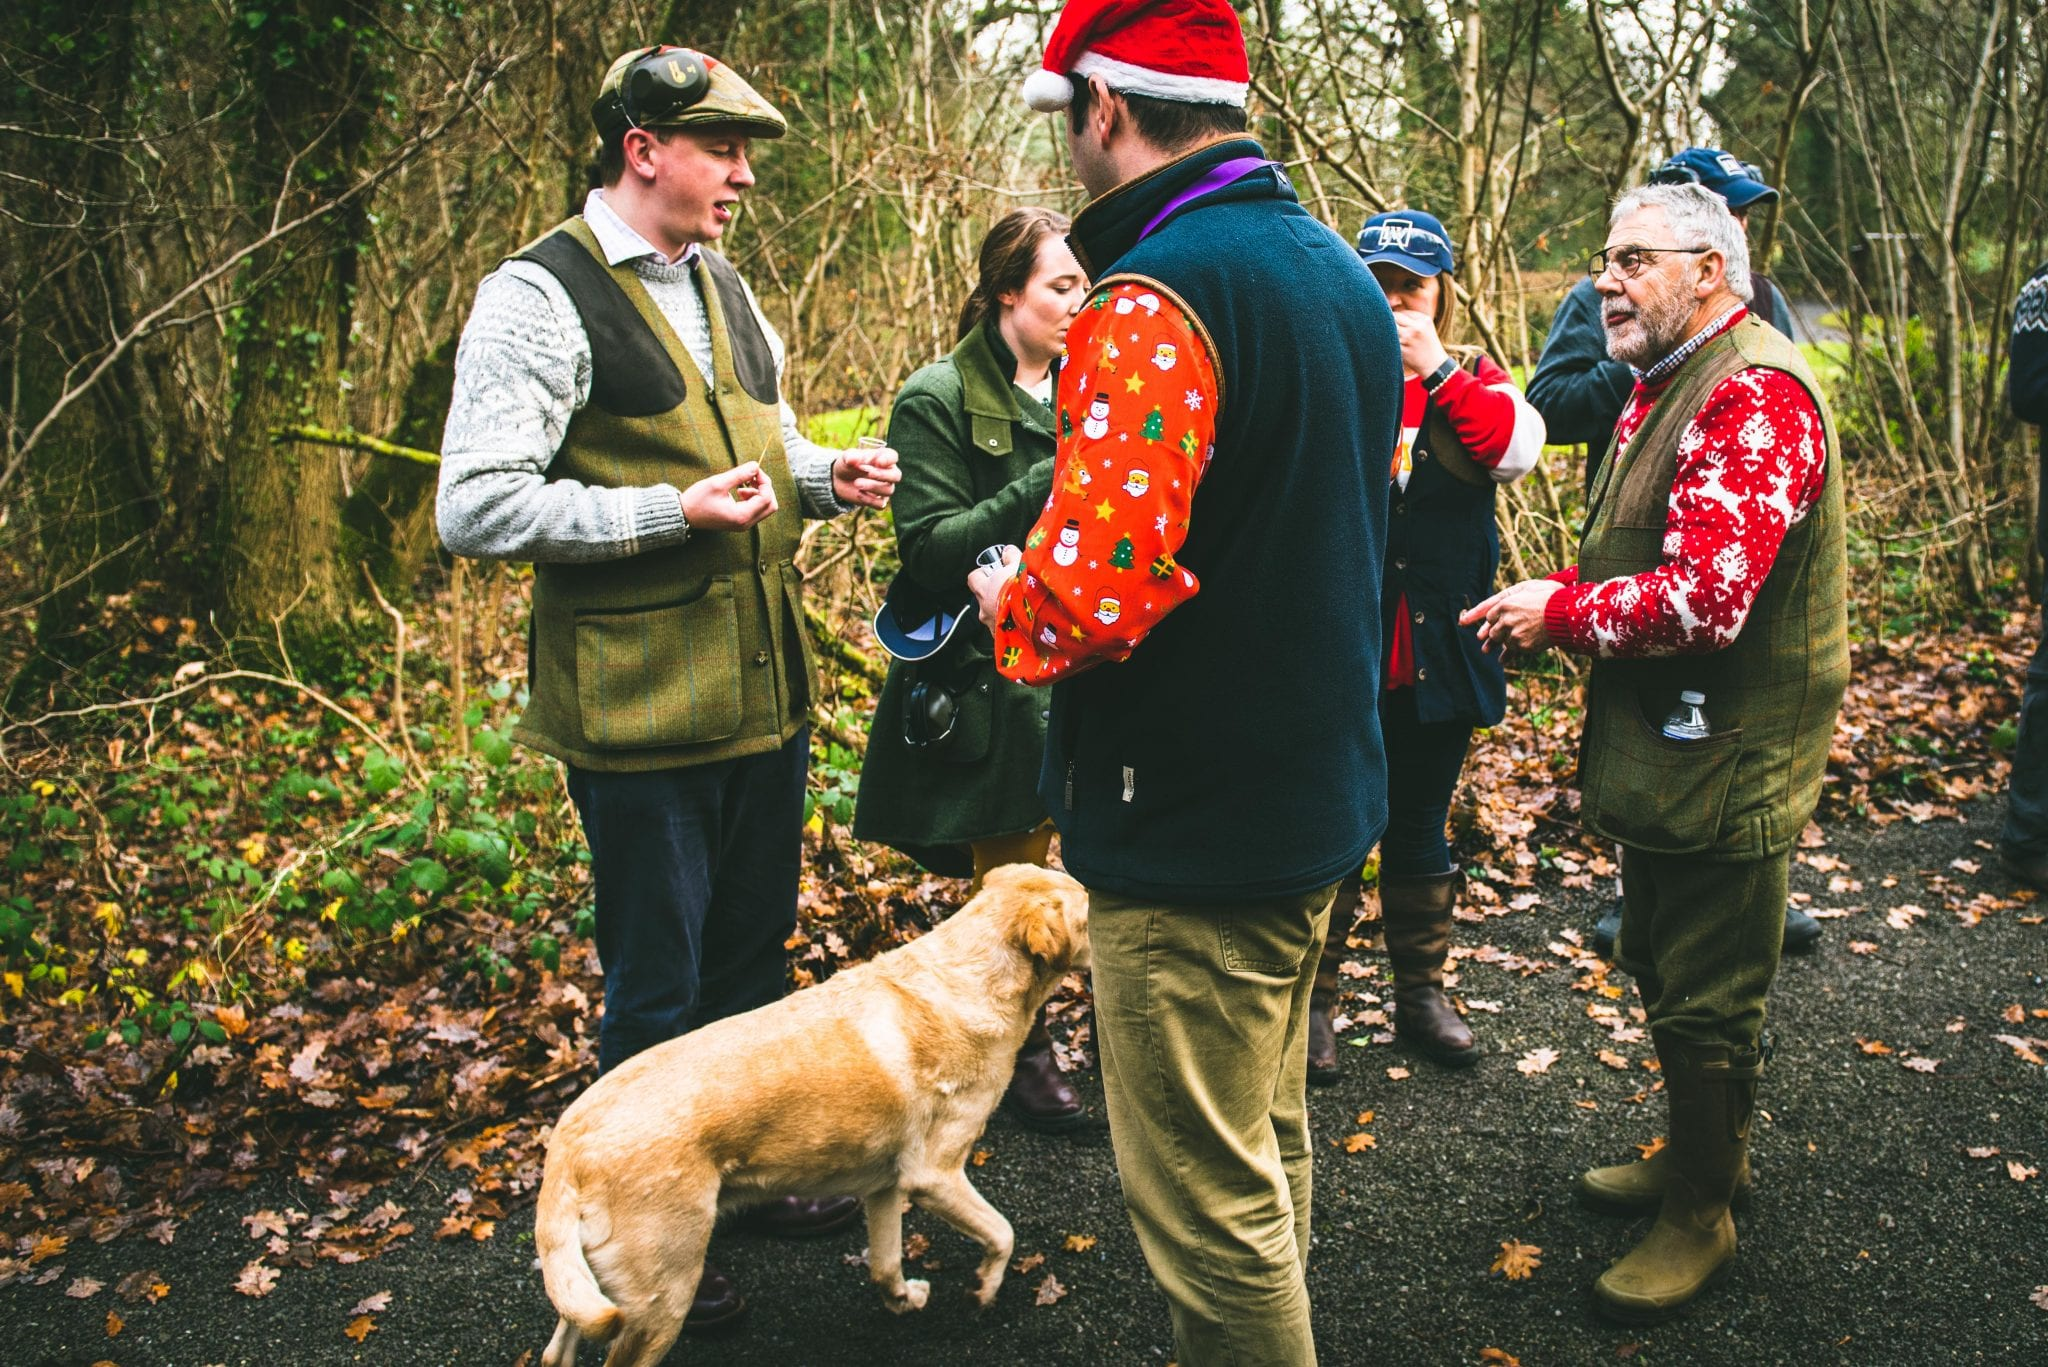 A group of customers enjoy a party and shoot in the Lady's Wood grounds